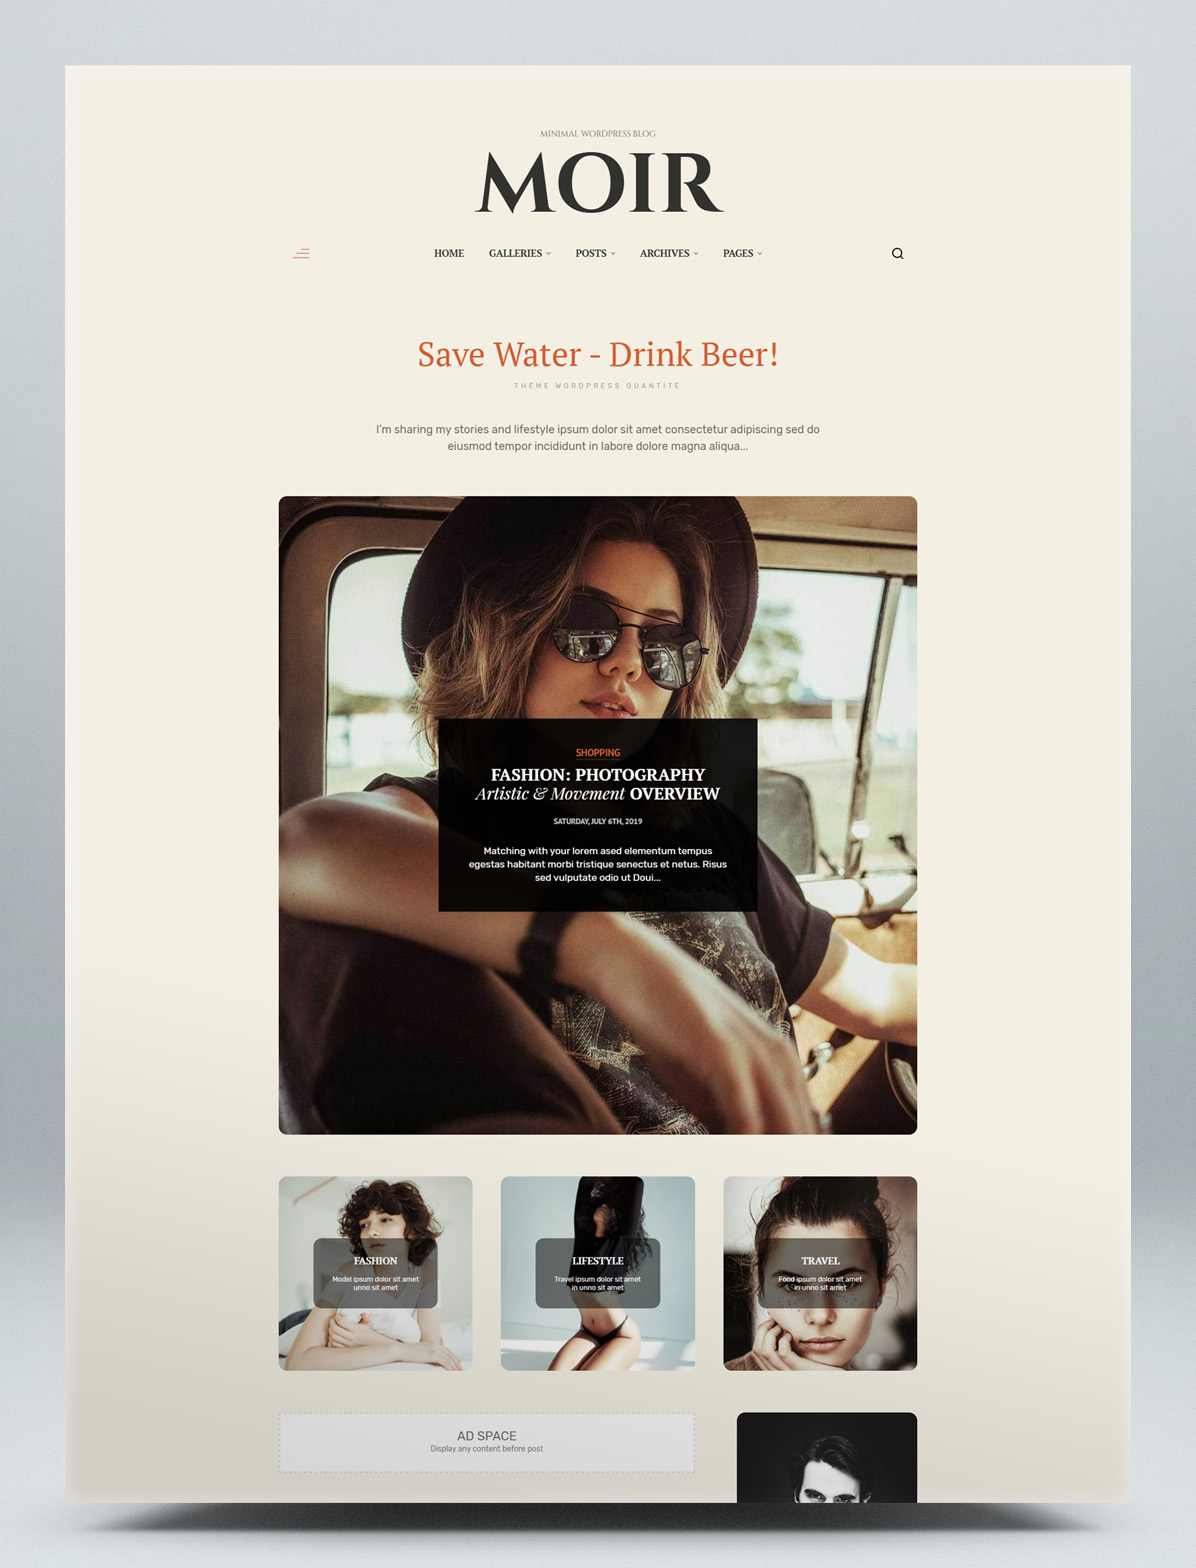 Fashion lifestyle blog WordPress theme